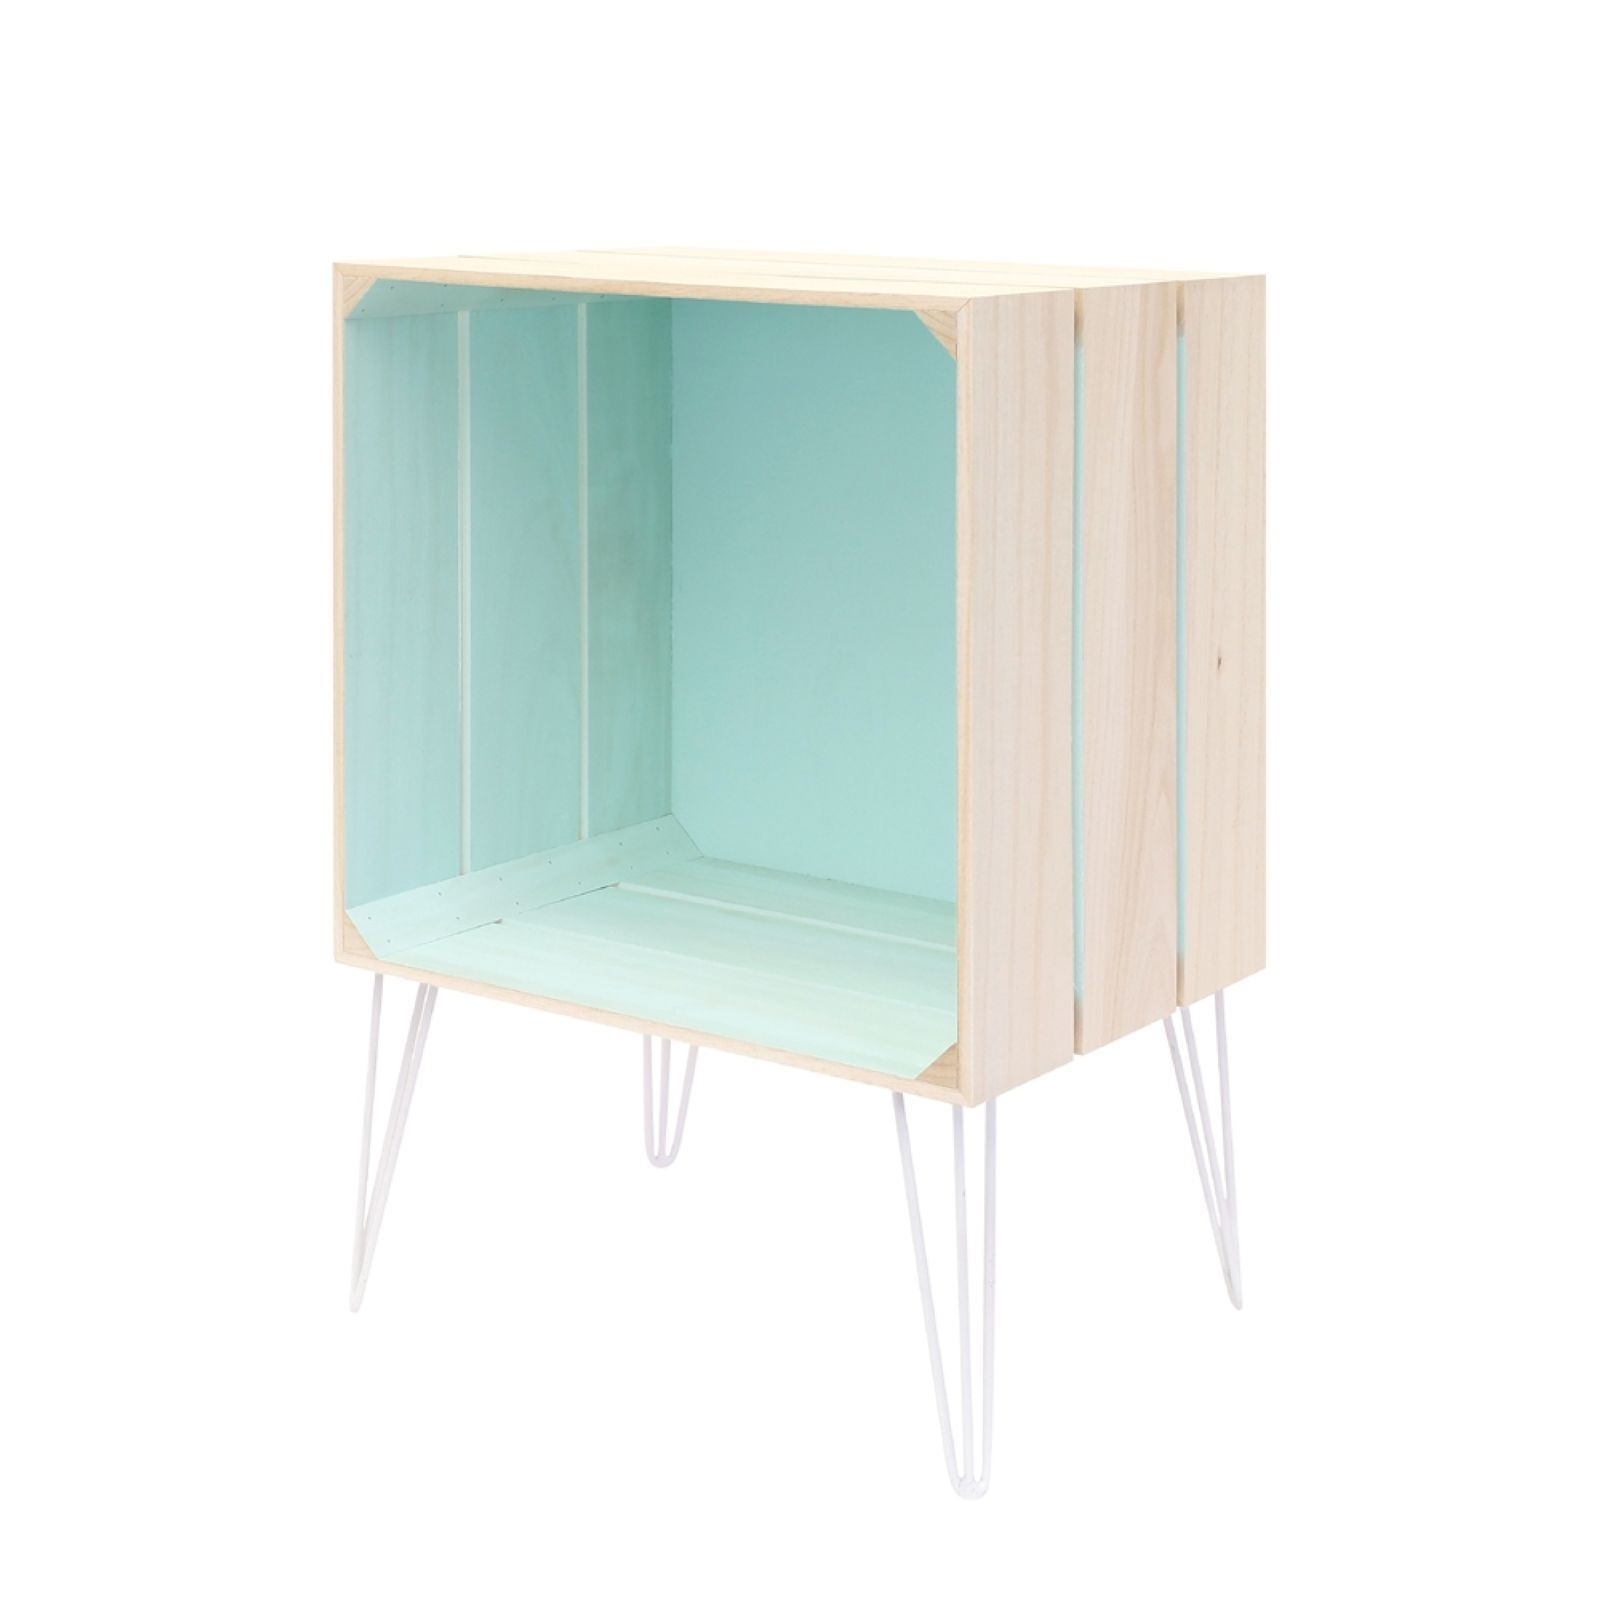 Meuble Tv Cagette Affordable The Home Deco Factory Meuble Cagette Turquoise